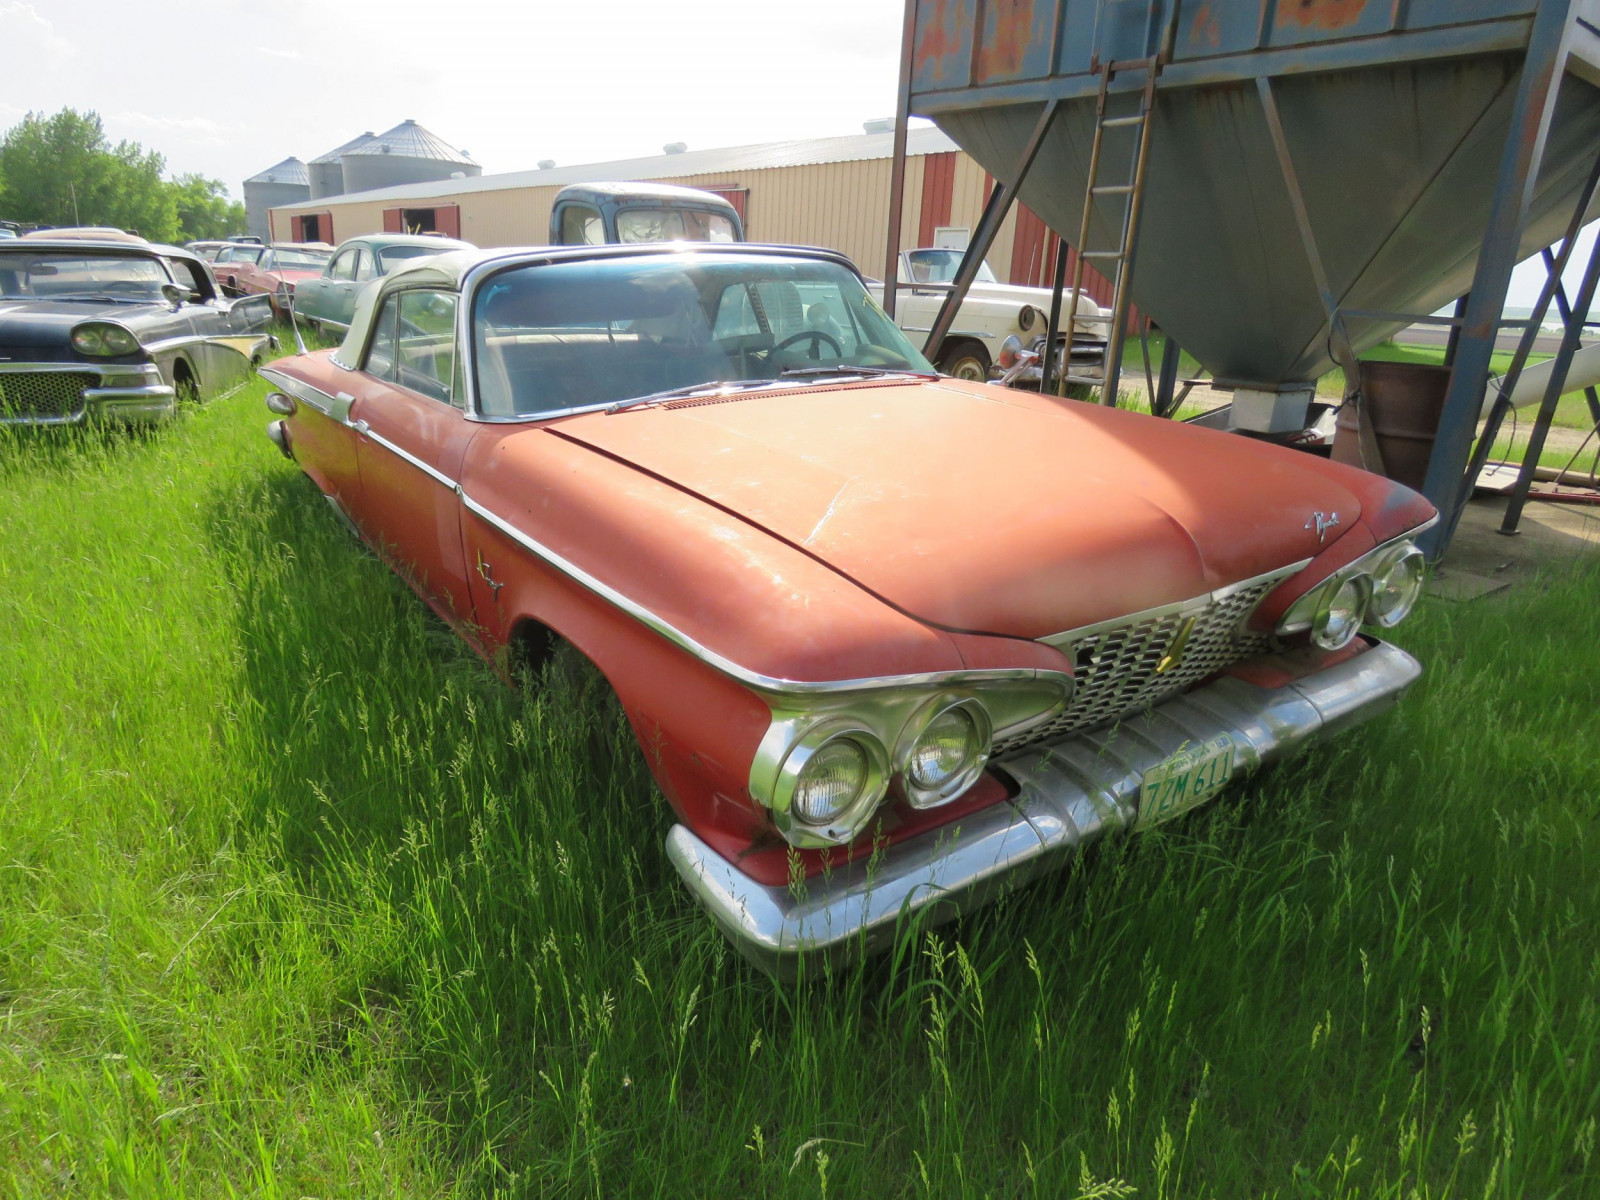 1961 Plymouth Fury Convertible 3311143965 - Image 3